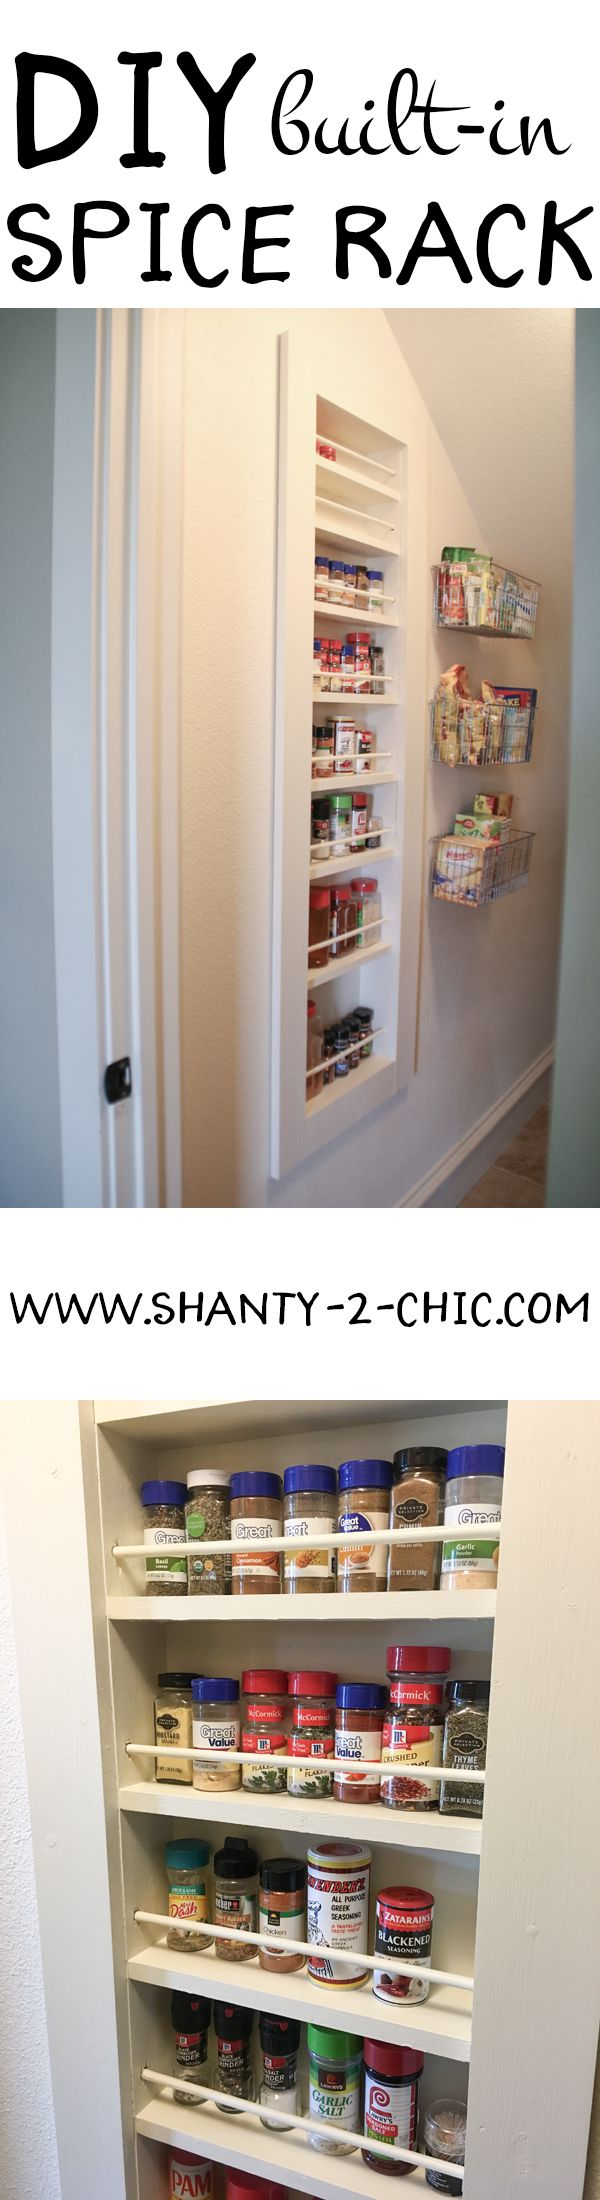 Maximize the storage in your pantry by